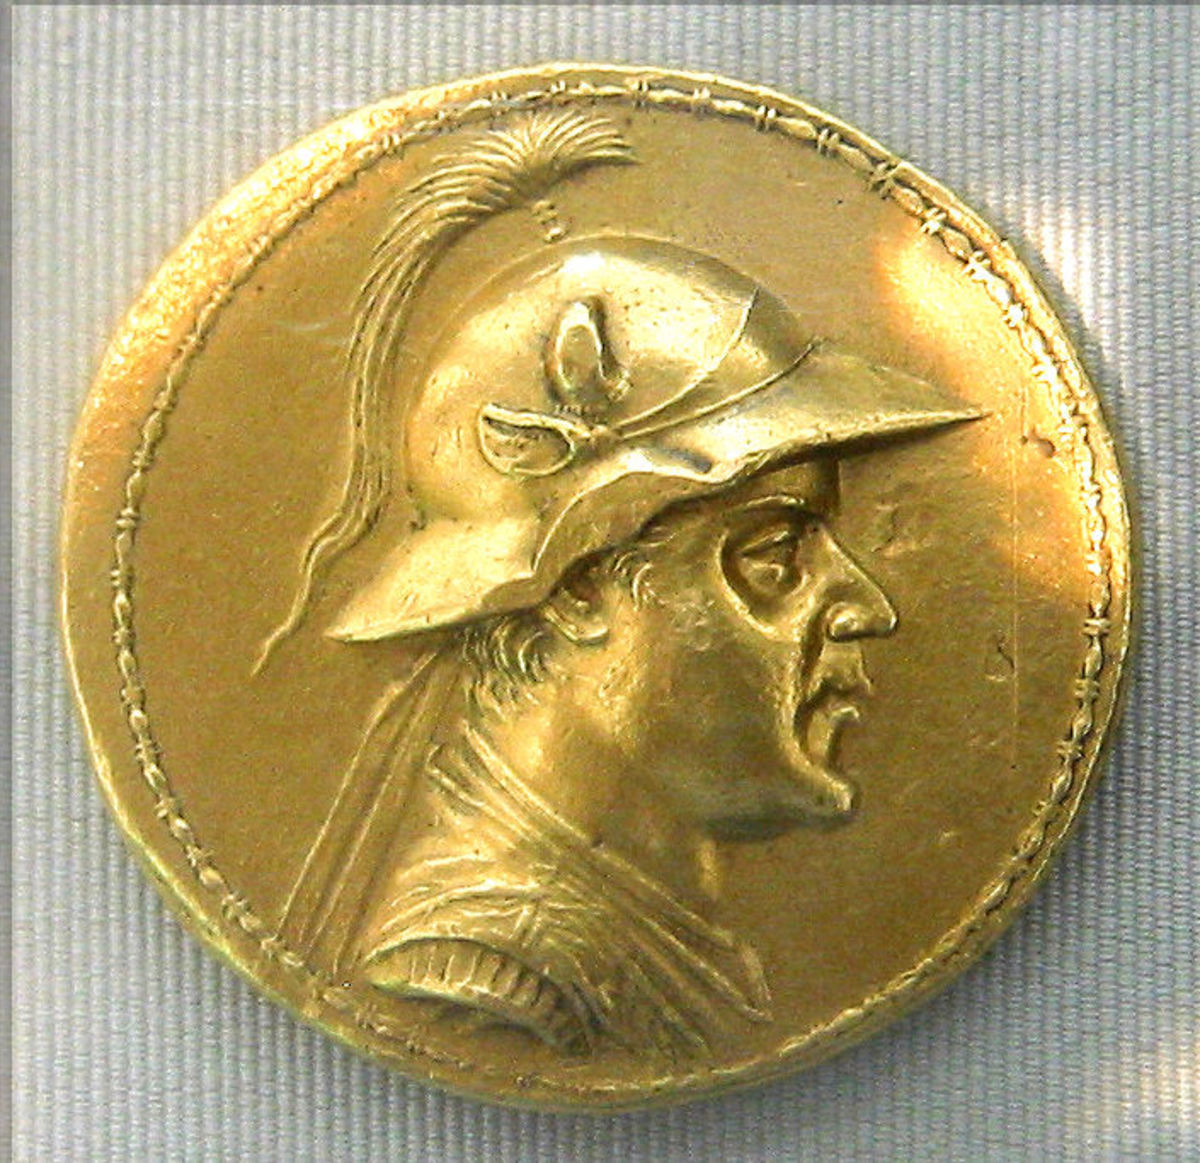 Gold stater of the Greco-Bactrian king Eucratides, the largest gold coin of the Ancient World.